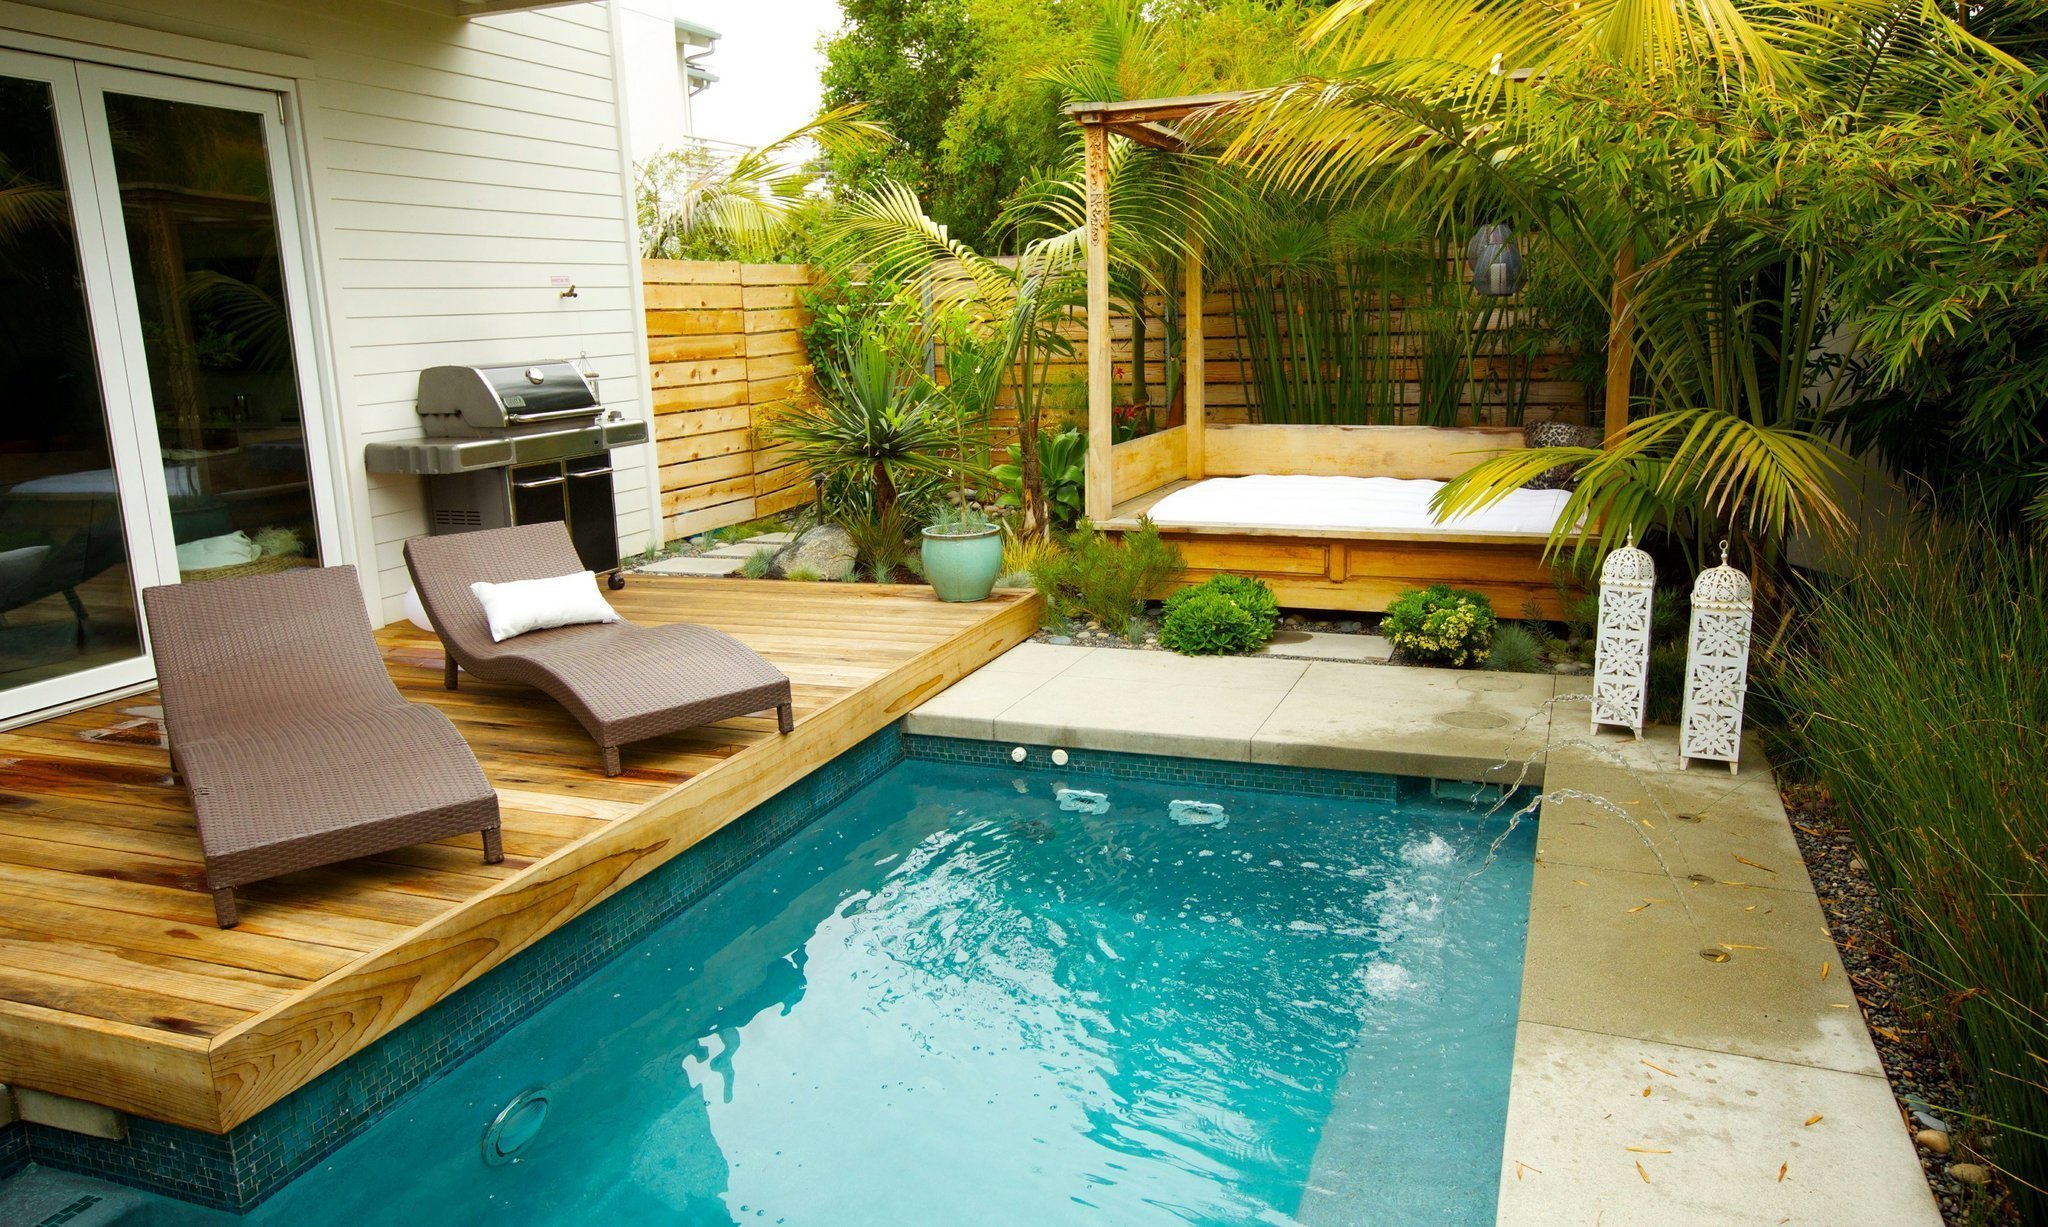 Small garden is tropical oasis - The San Diego Union-Tribune on Small Tropical Backyard id=99590